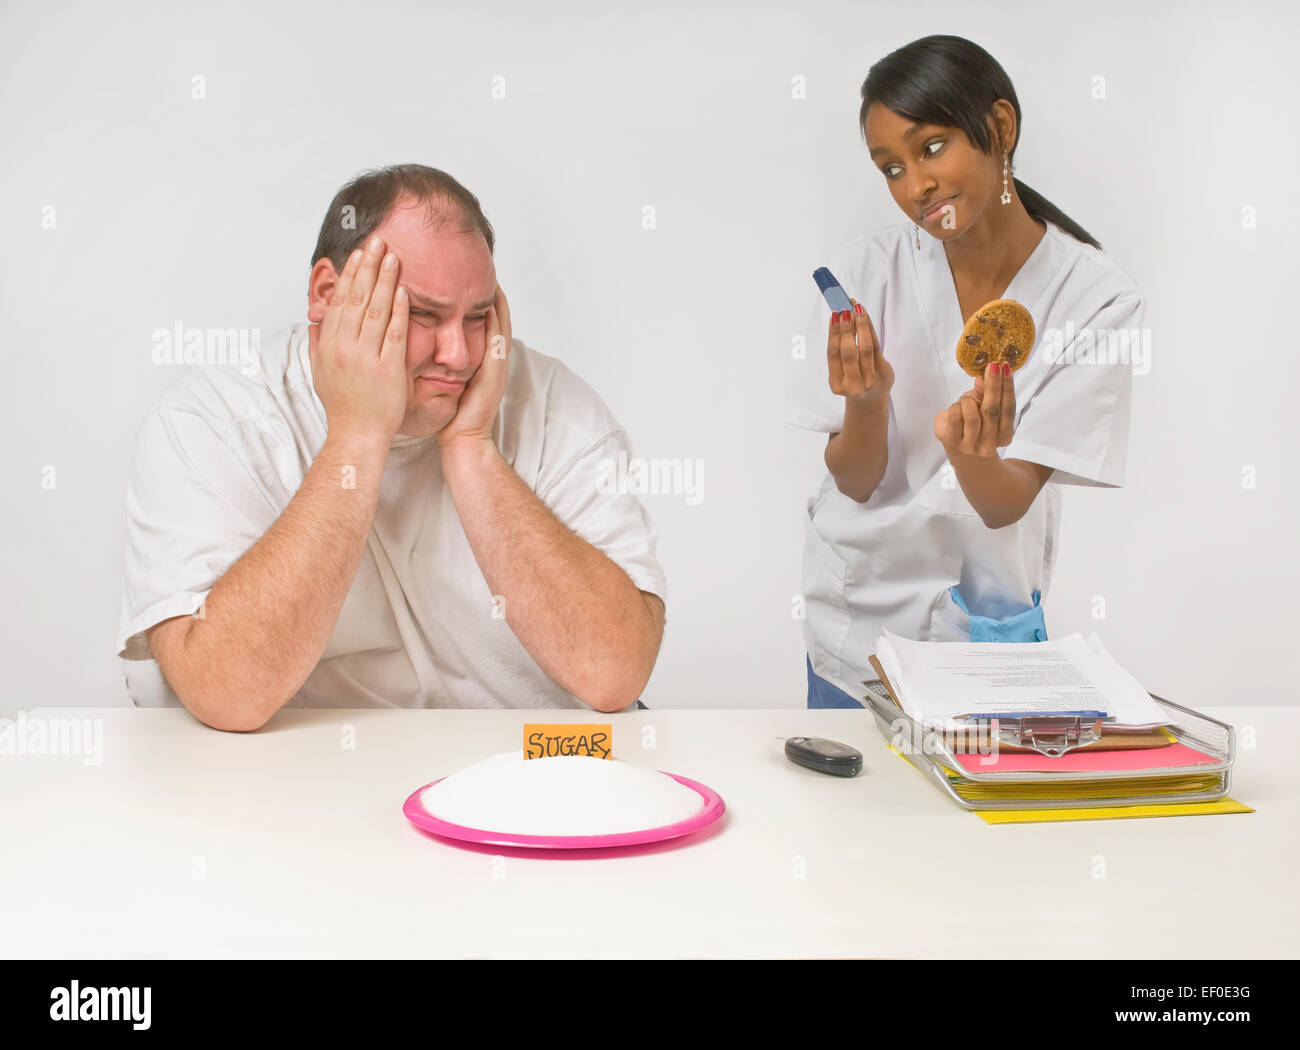 Frustrated diabetic man - Stock Image